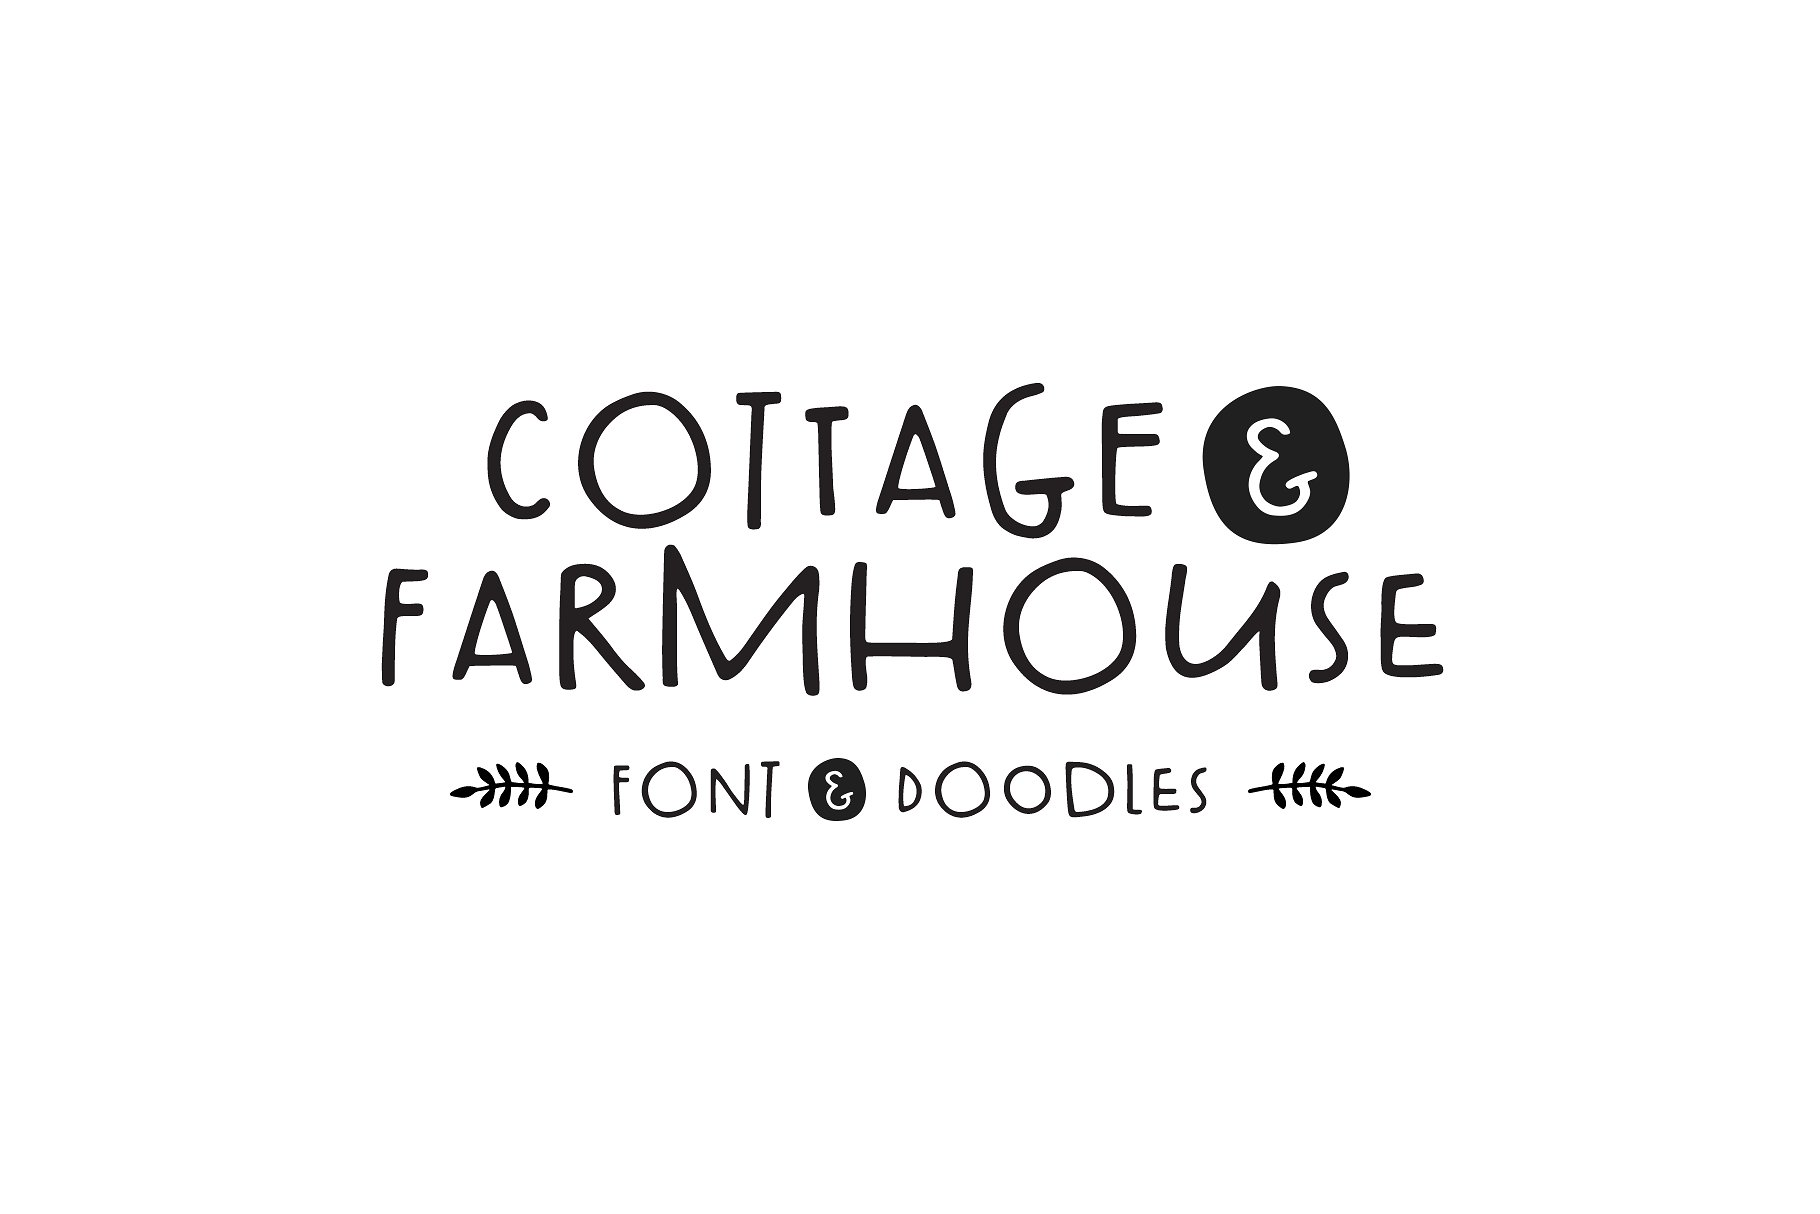 Cottage and Farmhouse